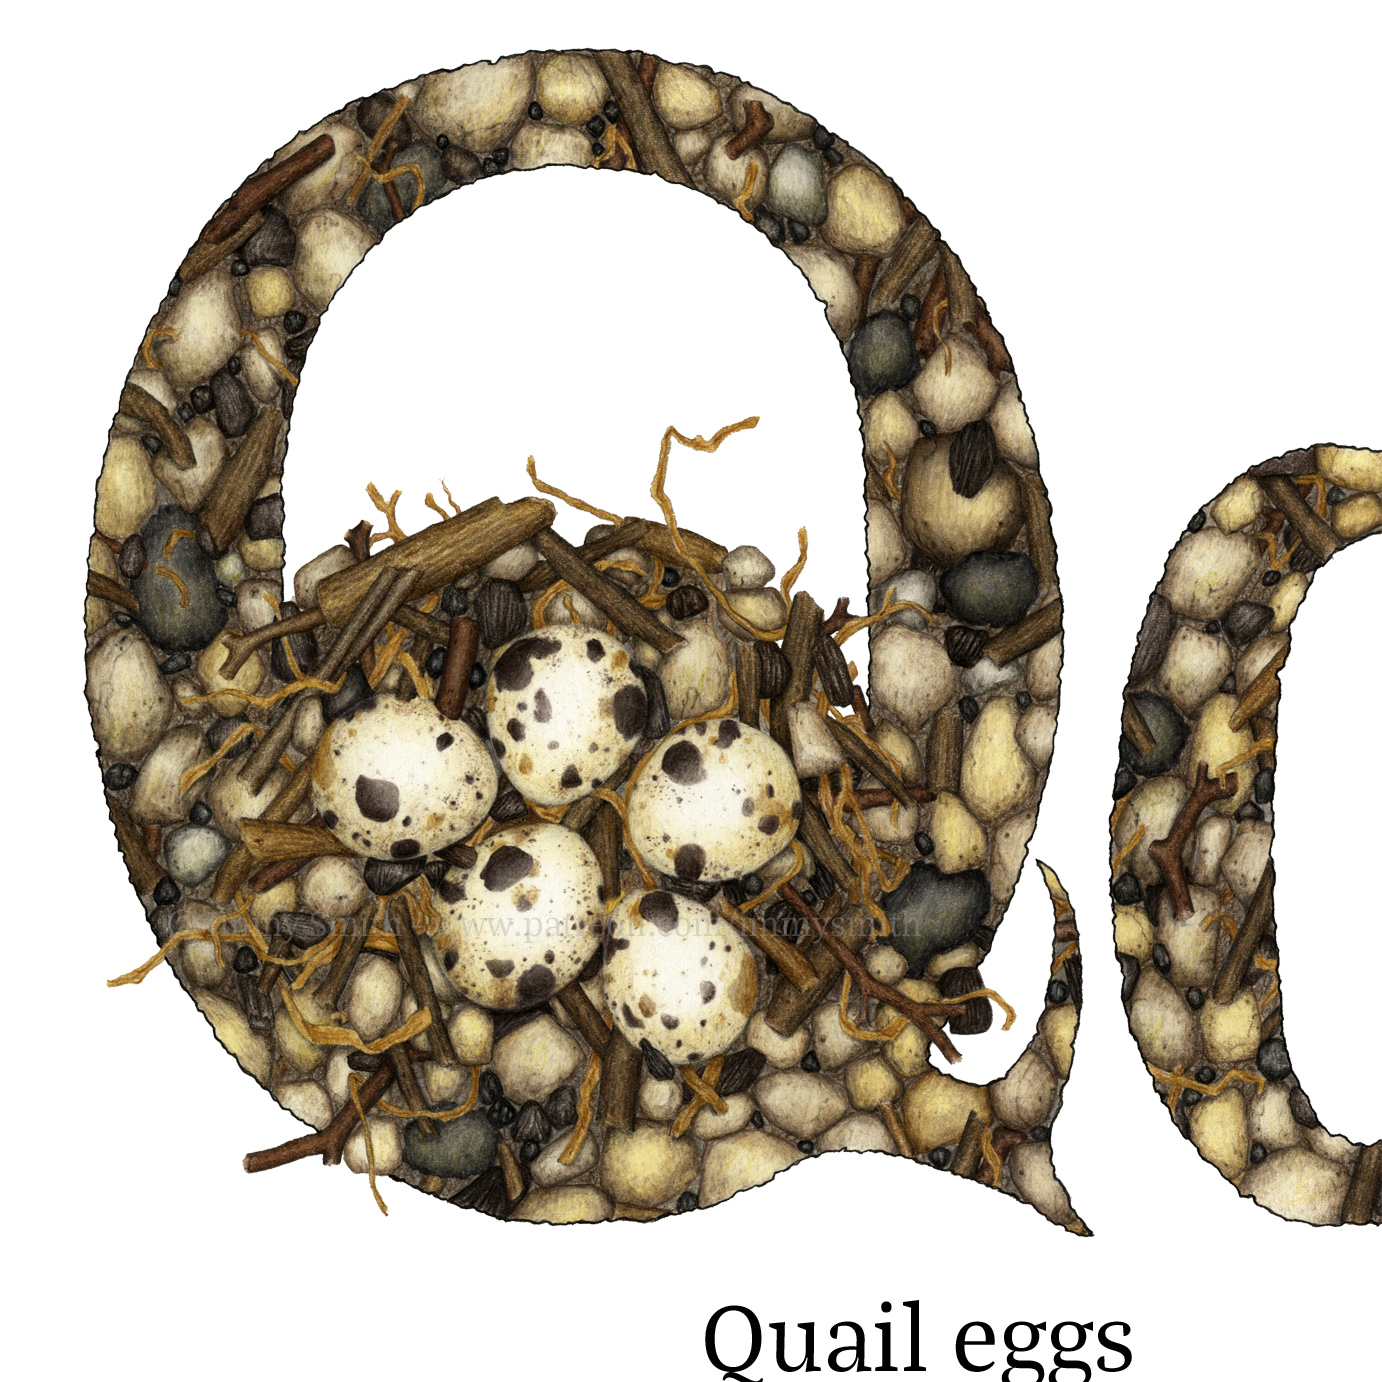 A 'sneak peek' (a partial image) of two letter Q's filled with a pattern of brown, grey, and cream pebbles, twigs, and quail eggs. There are quail eggs in a nest in the hollow of the uppercase letter.